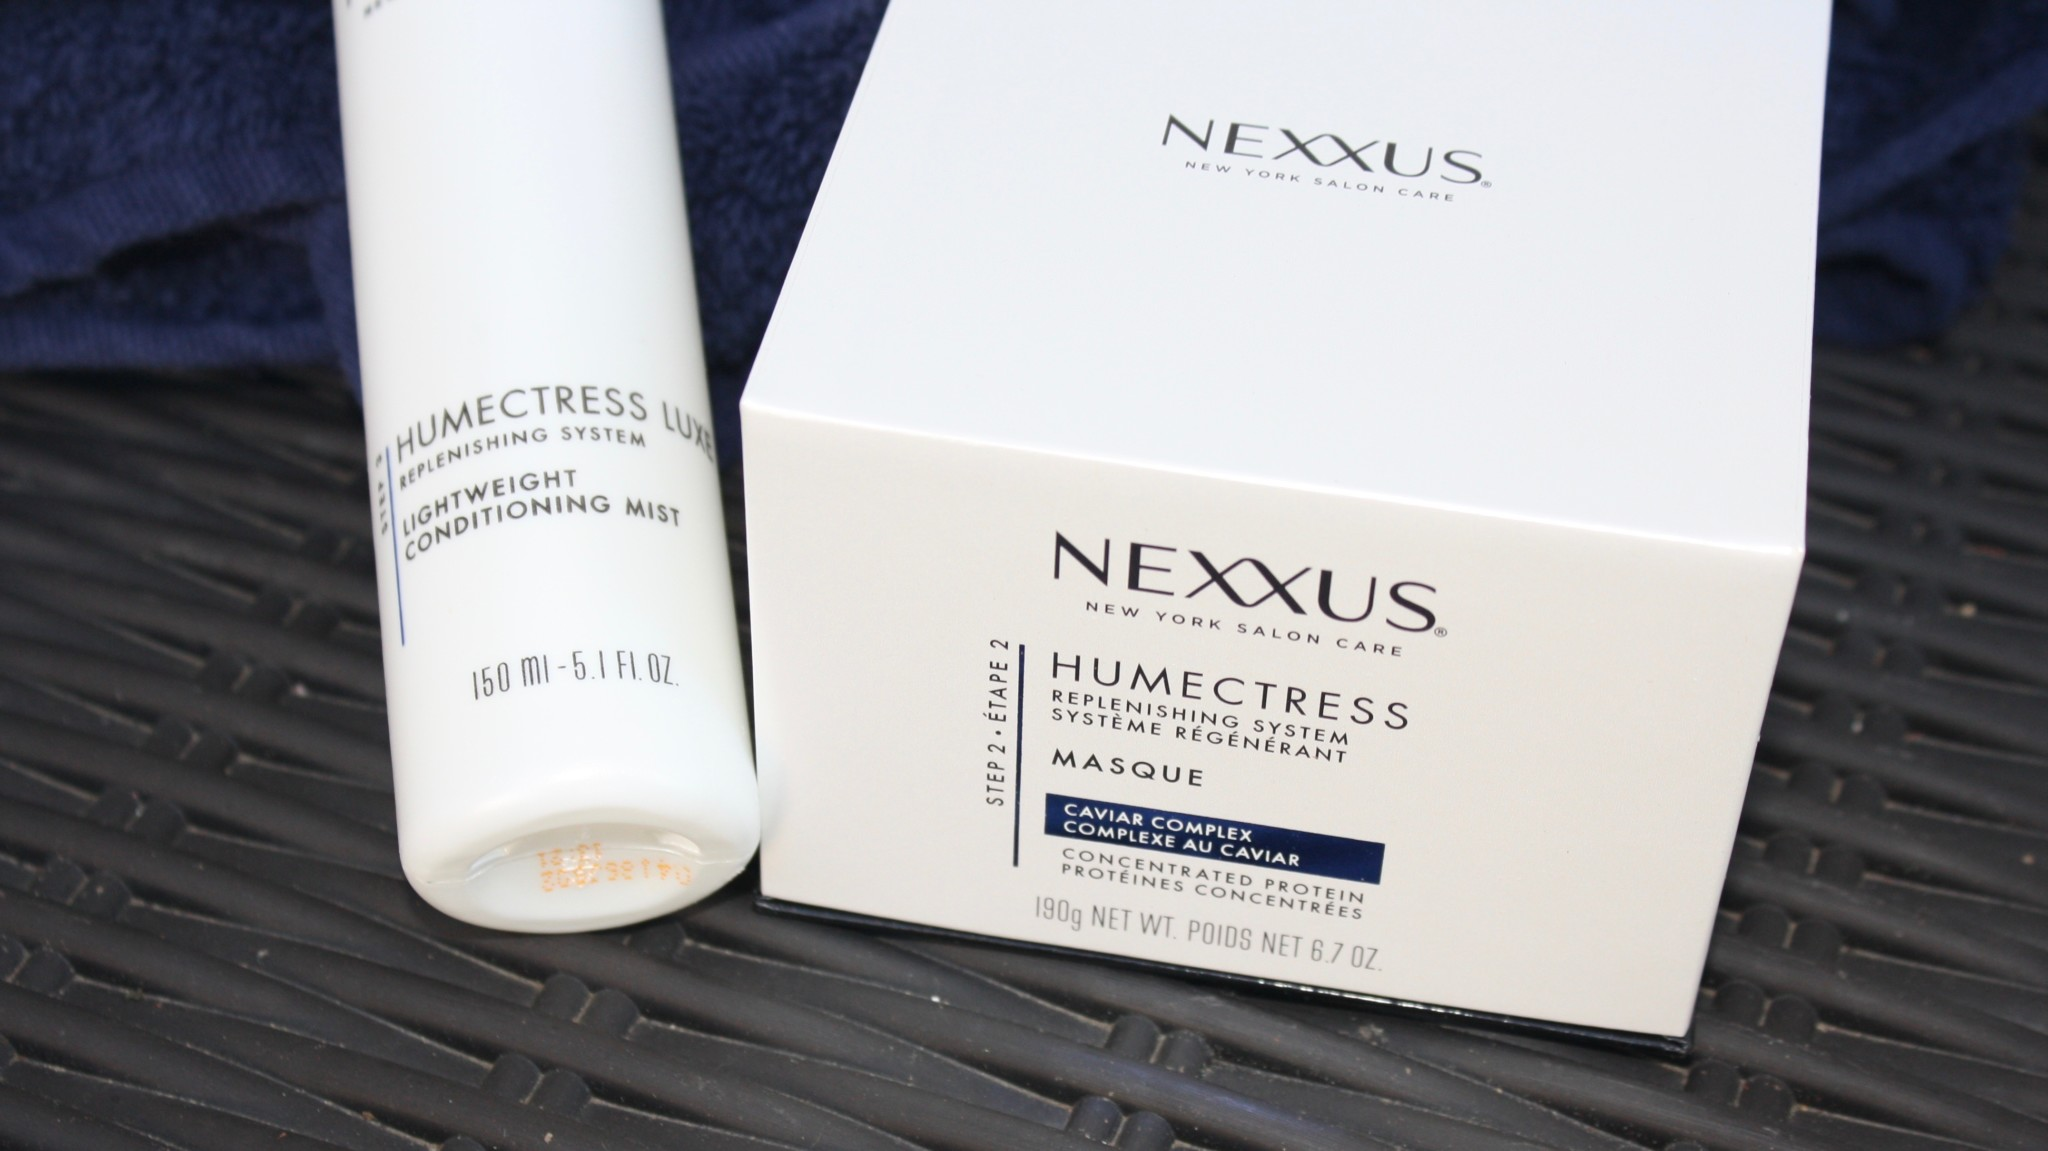 Nexxus Masque and Spray